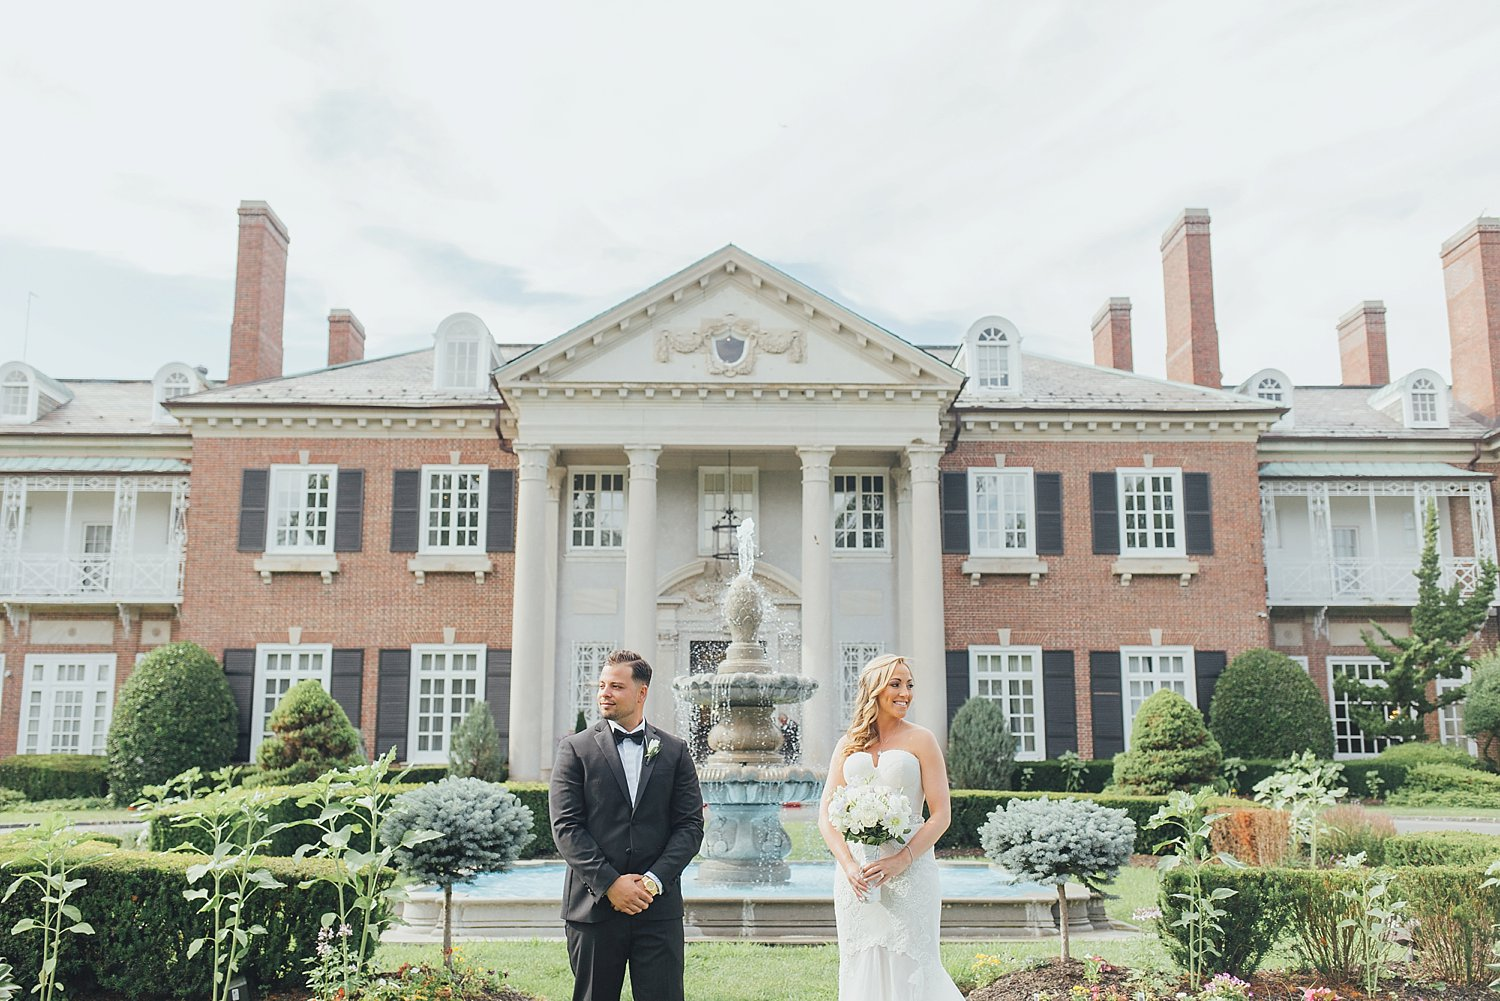 nyc-wedding-photography-nj-tri-state-cinematography-intothestory-by-moo-jae_0324.jpg